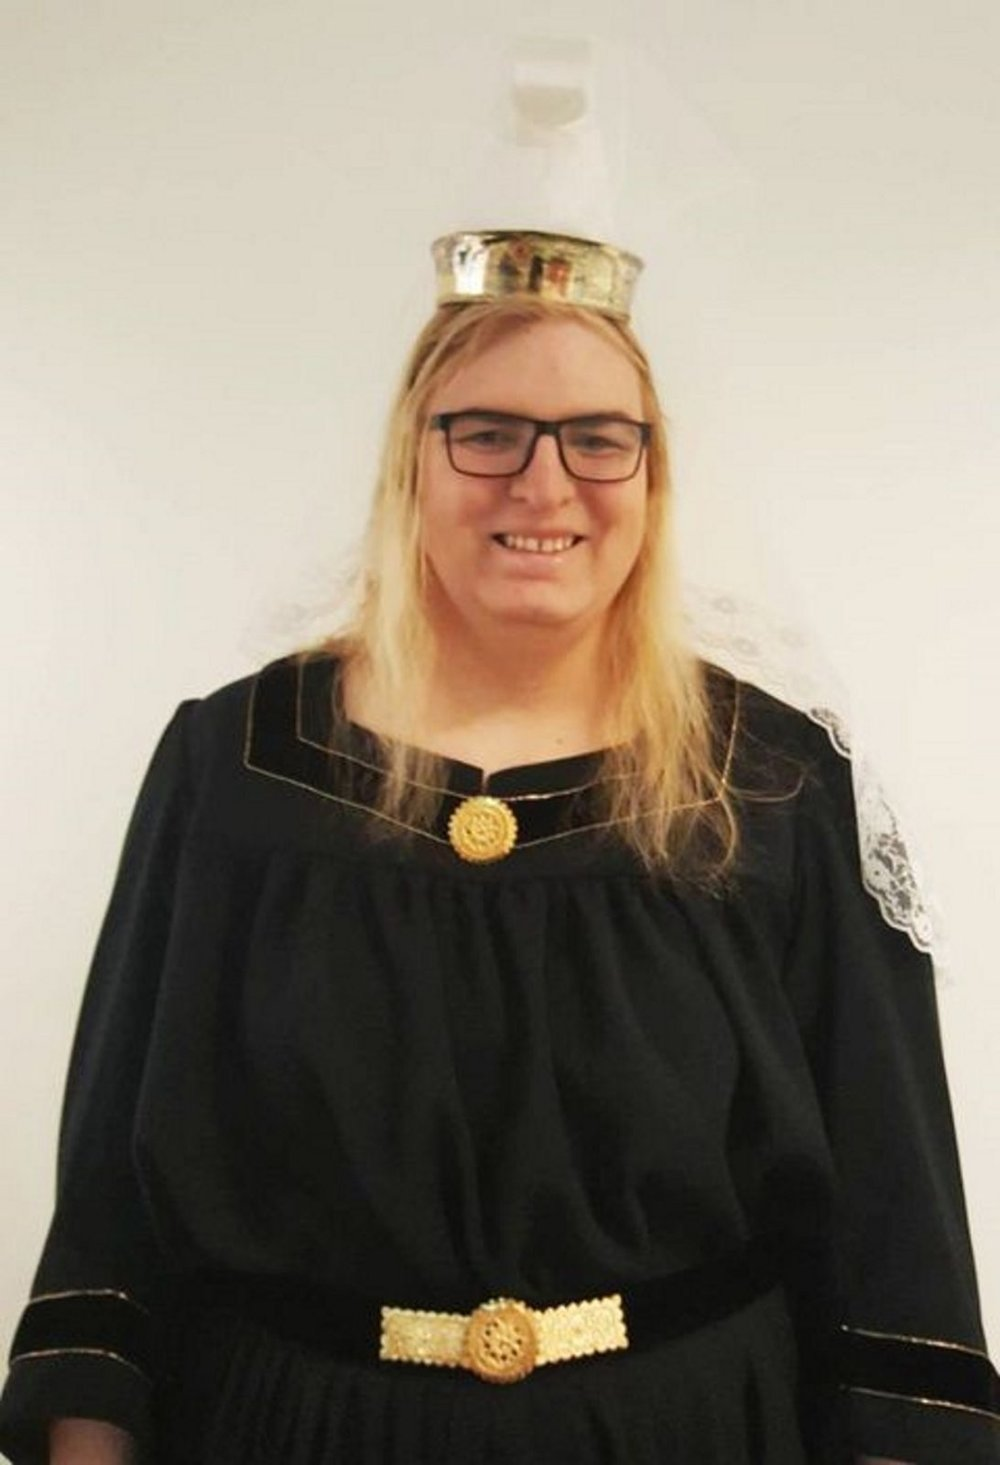 That transgender hag used to represent a woman, and the motherland, for Þjóðhátíðardagurinn (Iceland National Day)